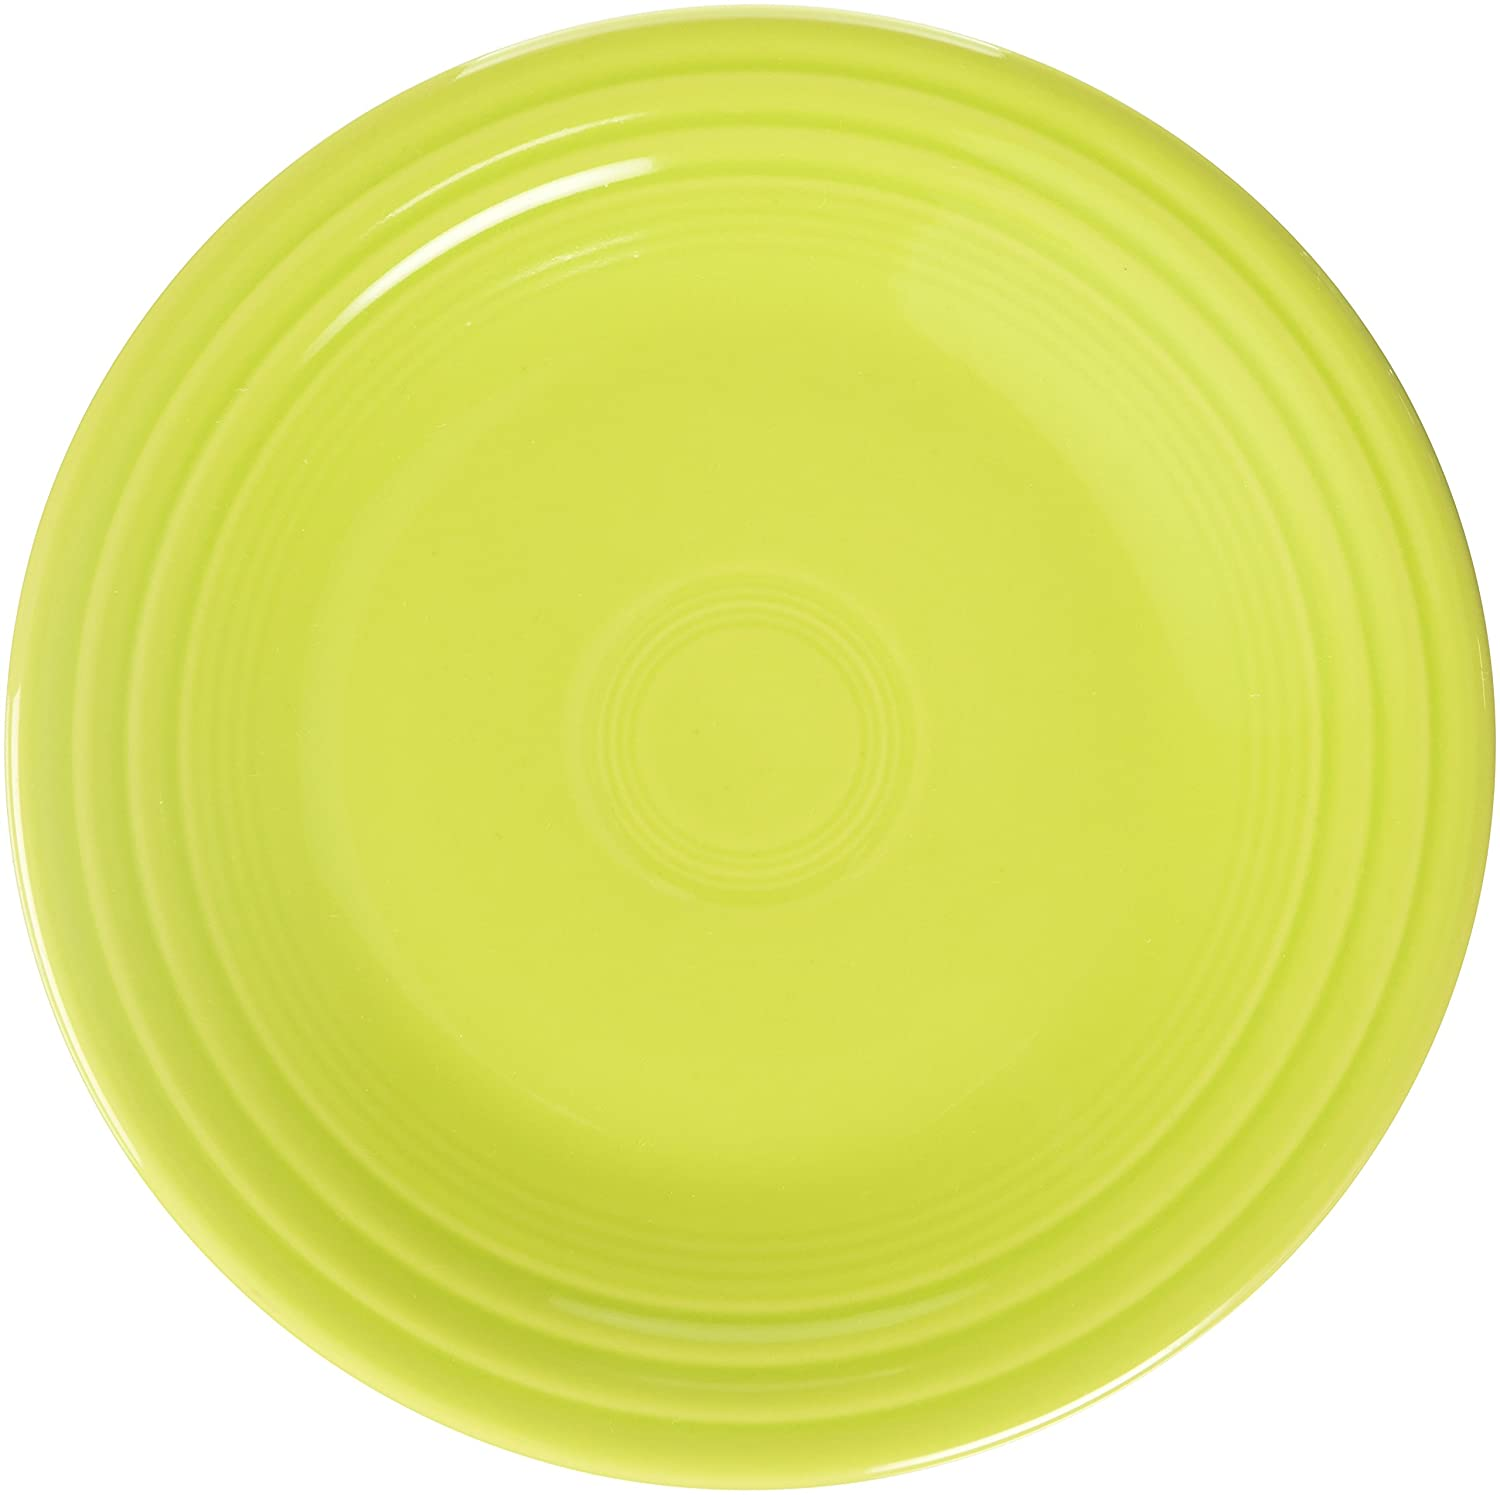 Fiesta 9-Inch Luncheon Plate, Lemongrass by Homer Laughlin